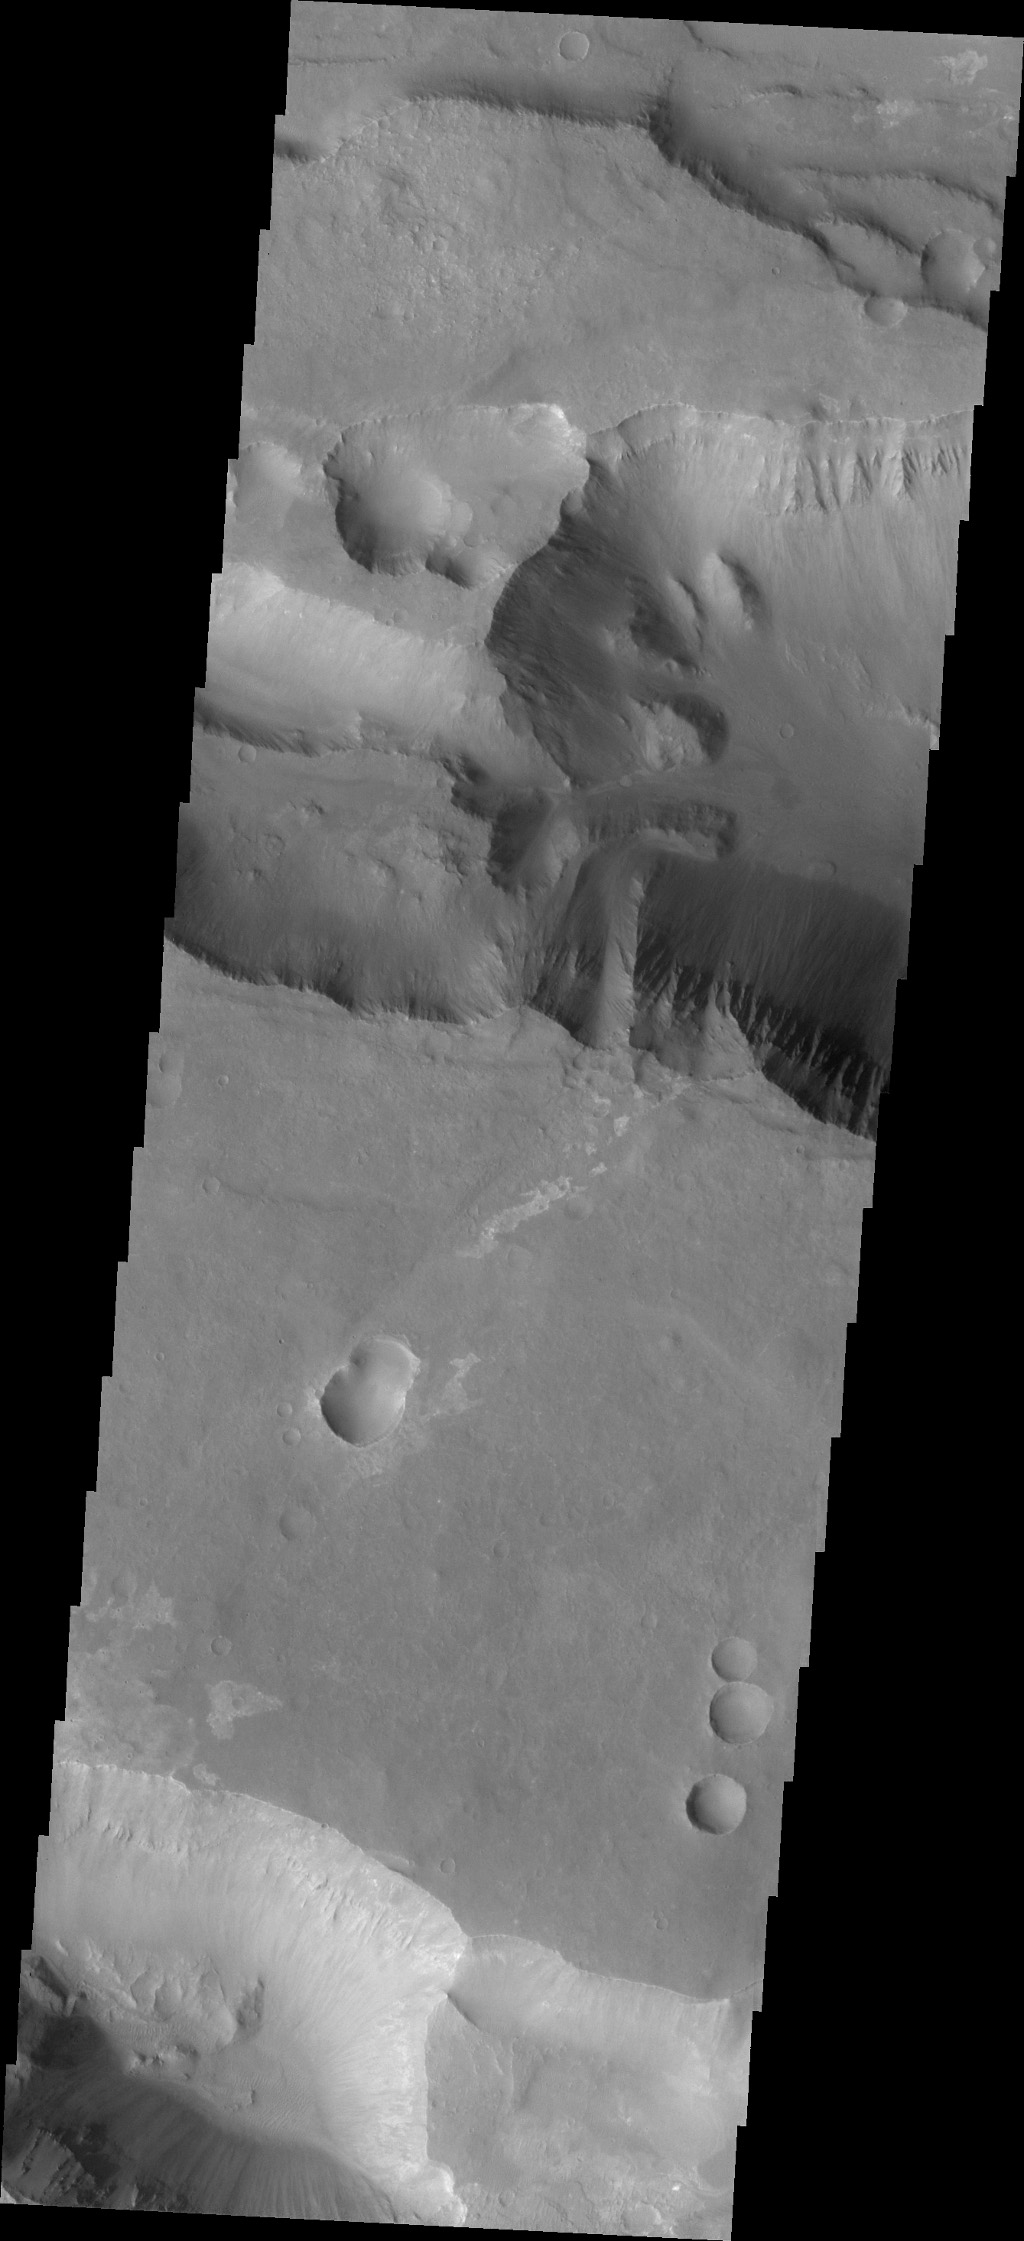 This image captured by NASA's 2001 Mars Odyssey spacecraft shows a portion of Coprates Catena, a shallow system of connecting depressions south of Coprates Chasma.